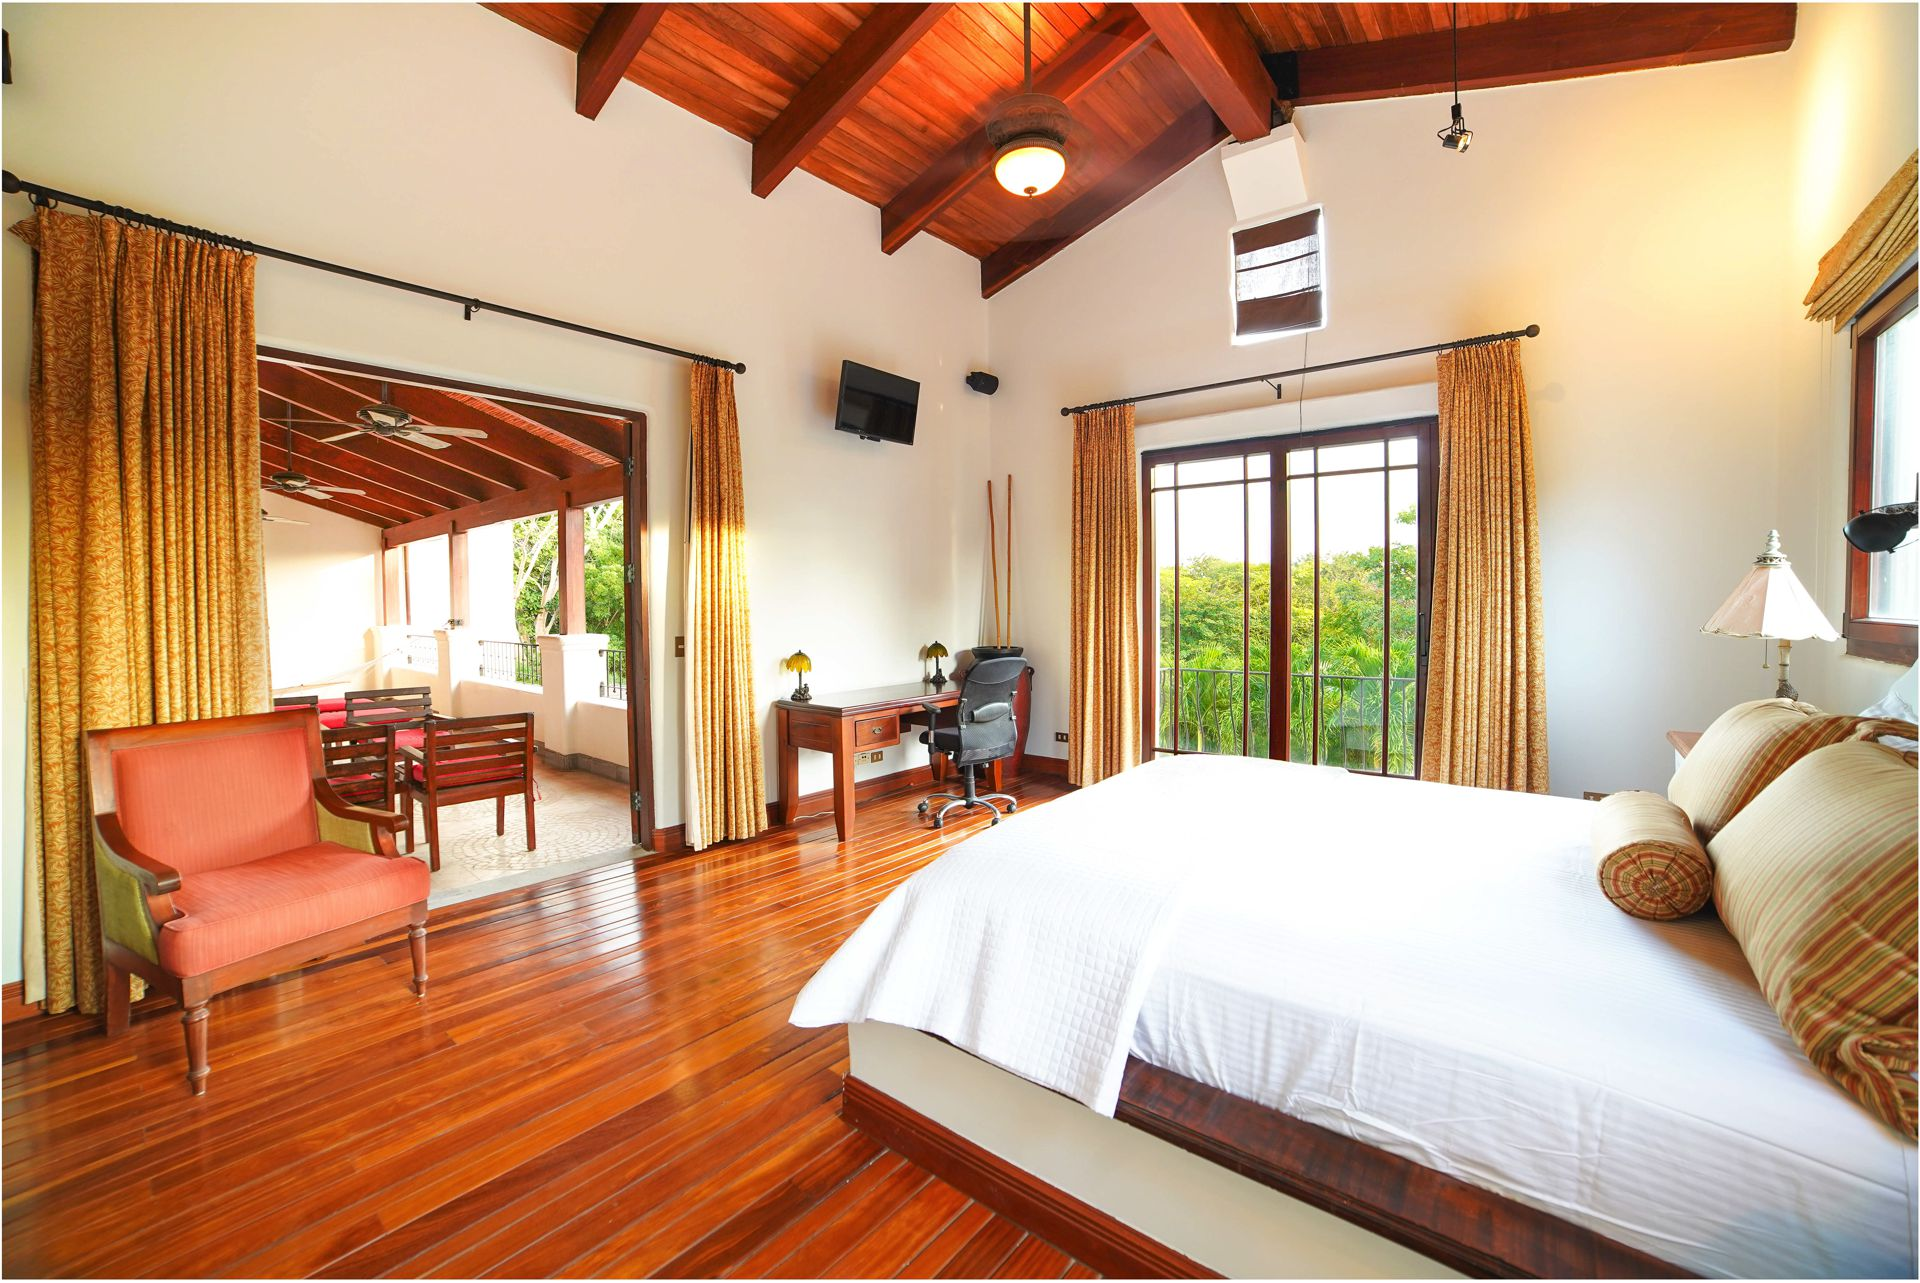 Spacious bedroom with access to terrace